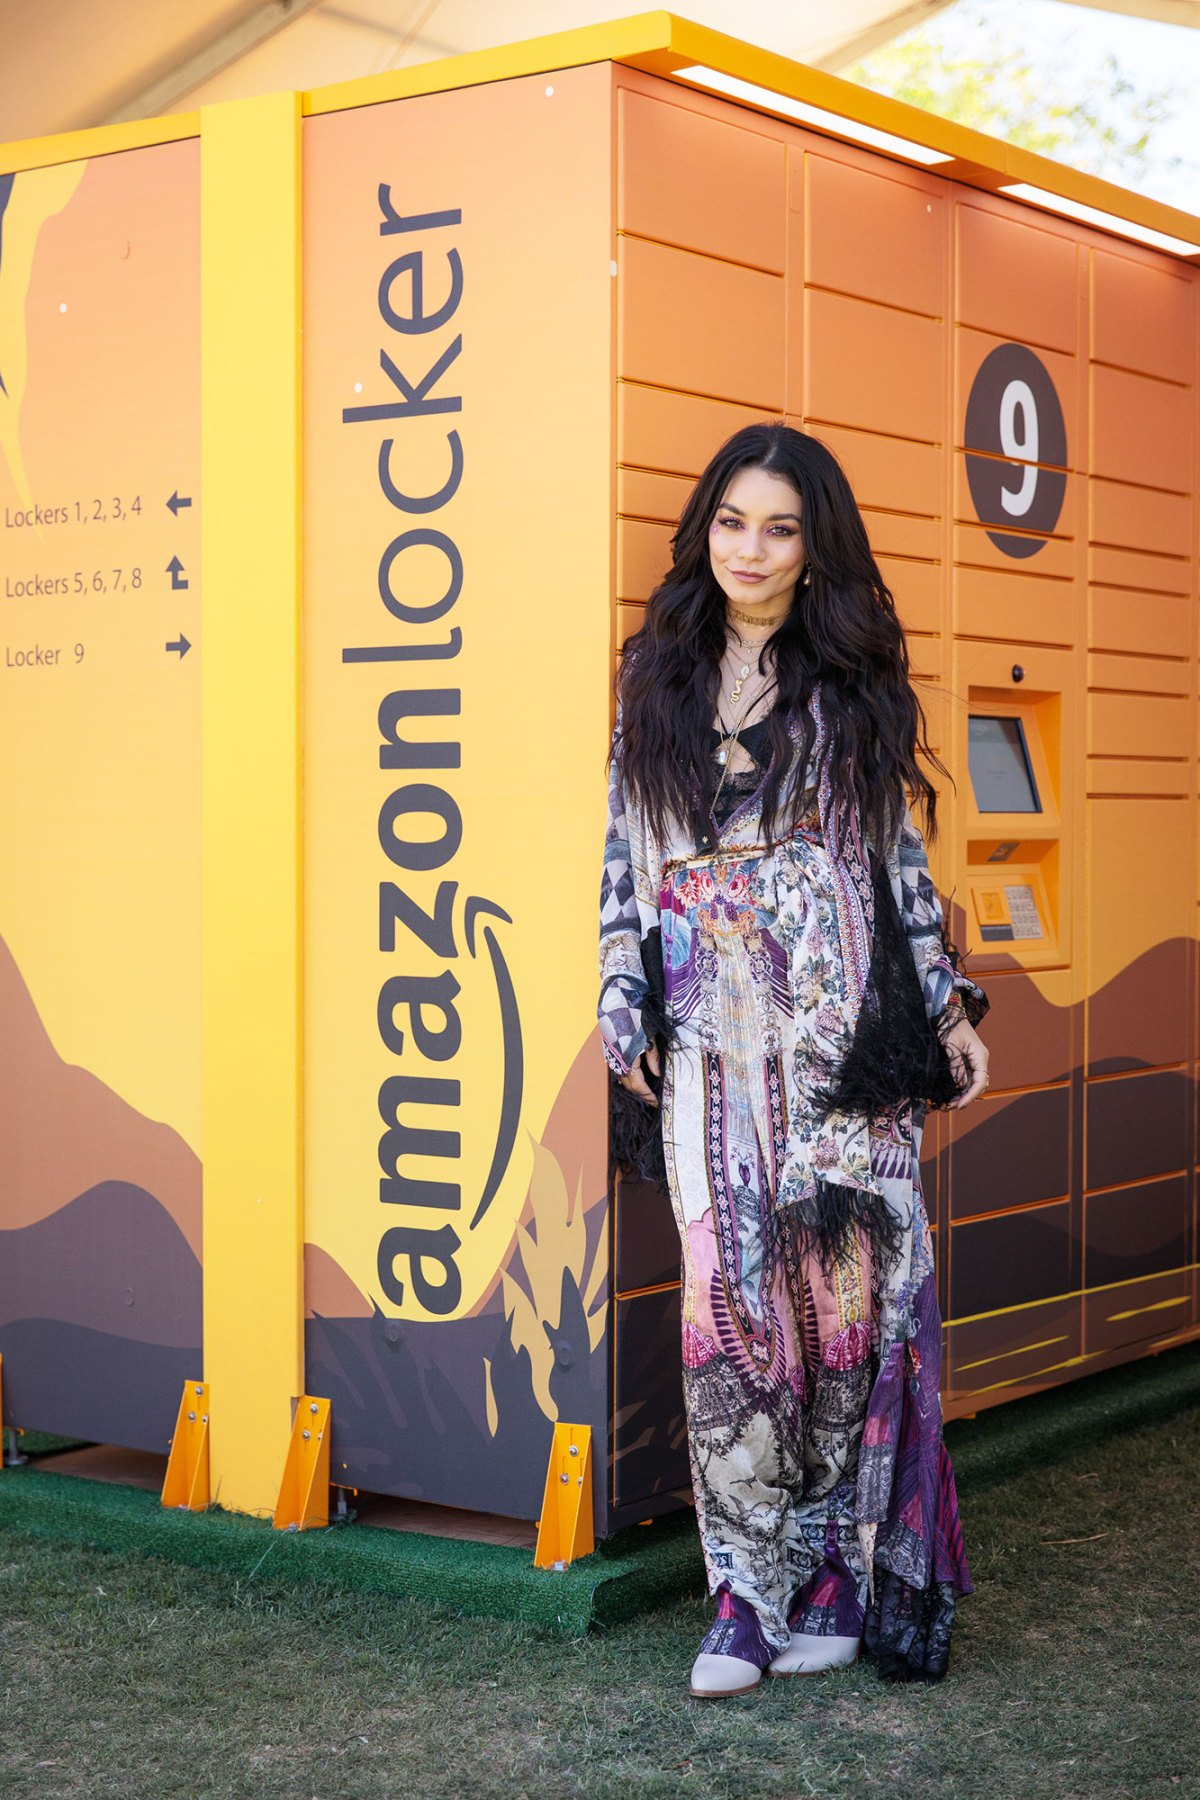 0a3d82eba60 Coachella 2019 Celeb Festival Style: Best, Wildest Fashion Looks